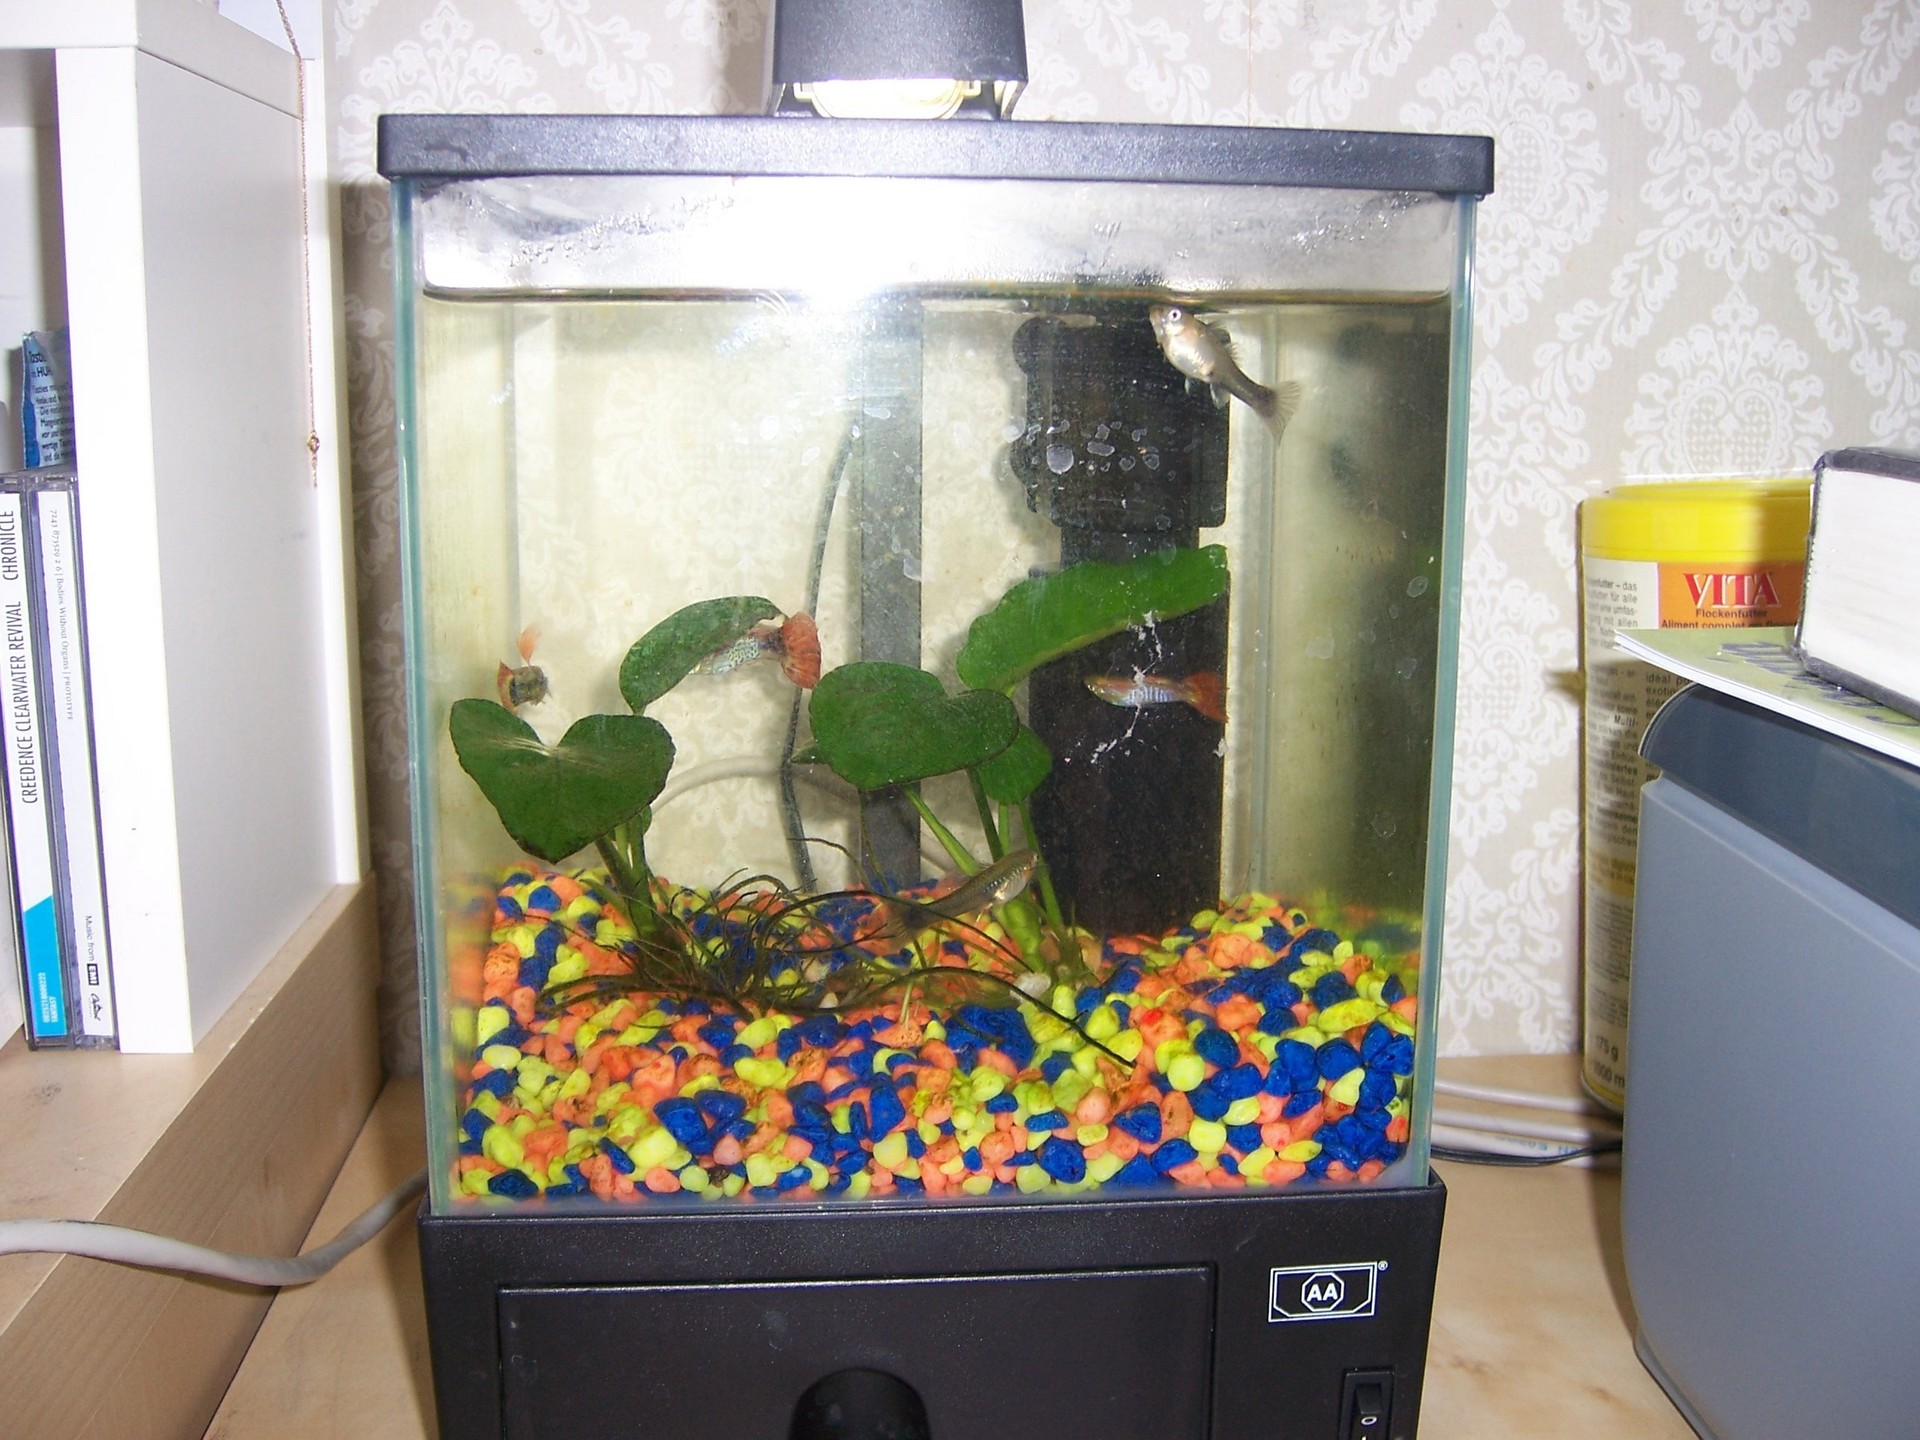 Small aquarium fish tanks - Small Tank Fish Photo 1145908 Fanpop